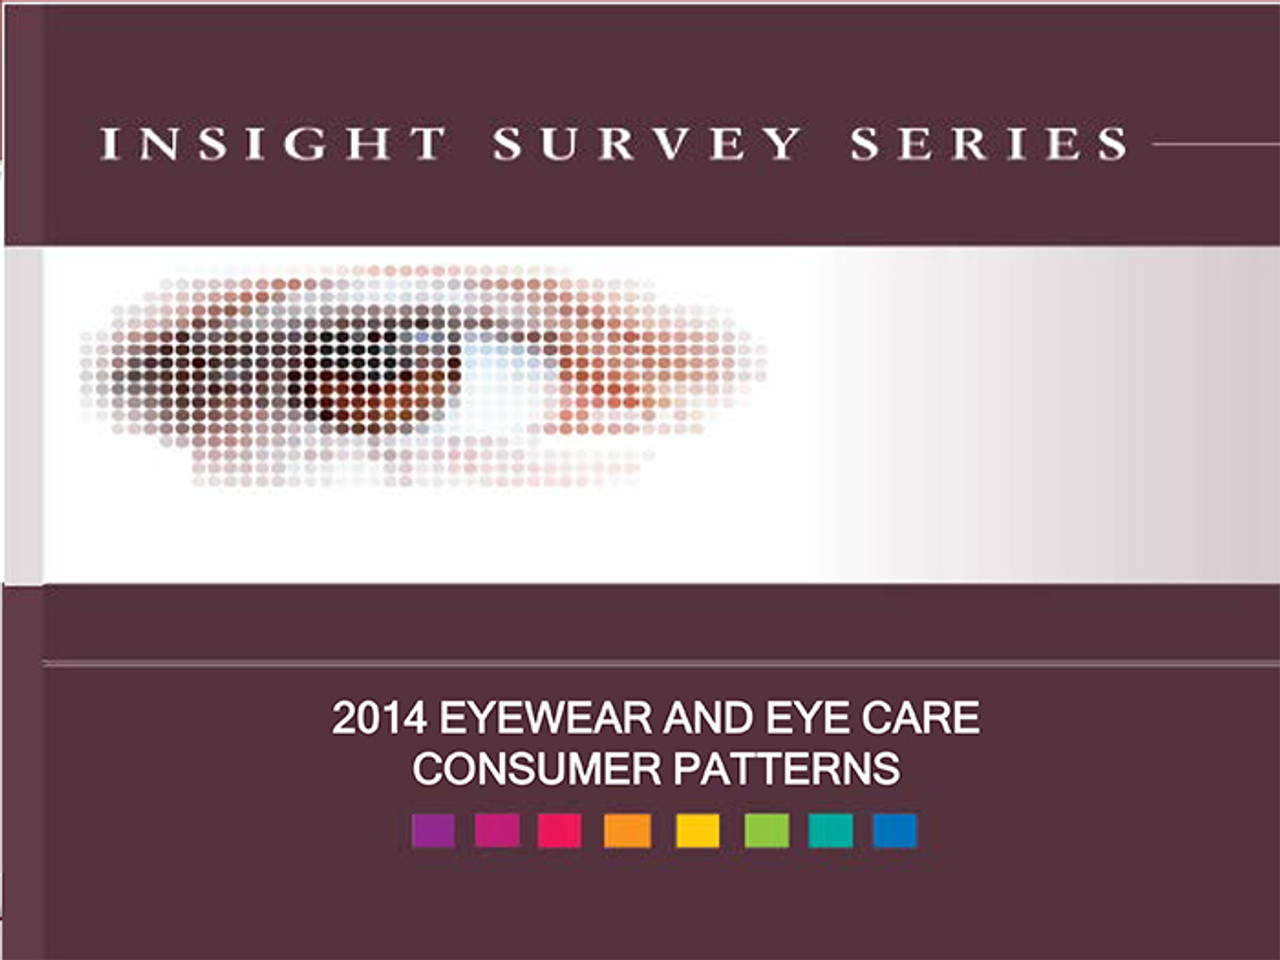 2014 U.S. Eyewear & Eye Care Consumer Patterns Insight Survey